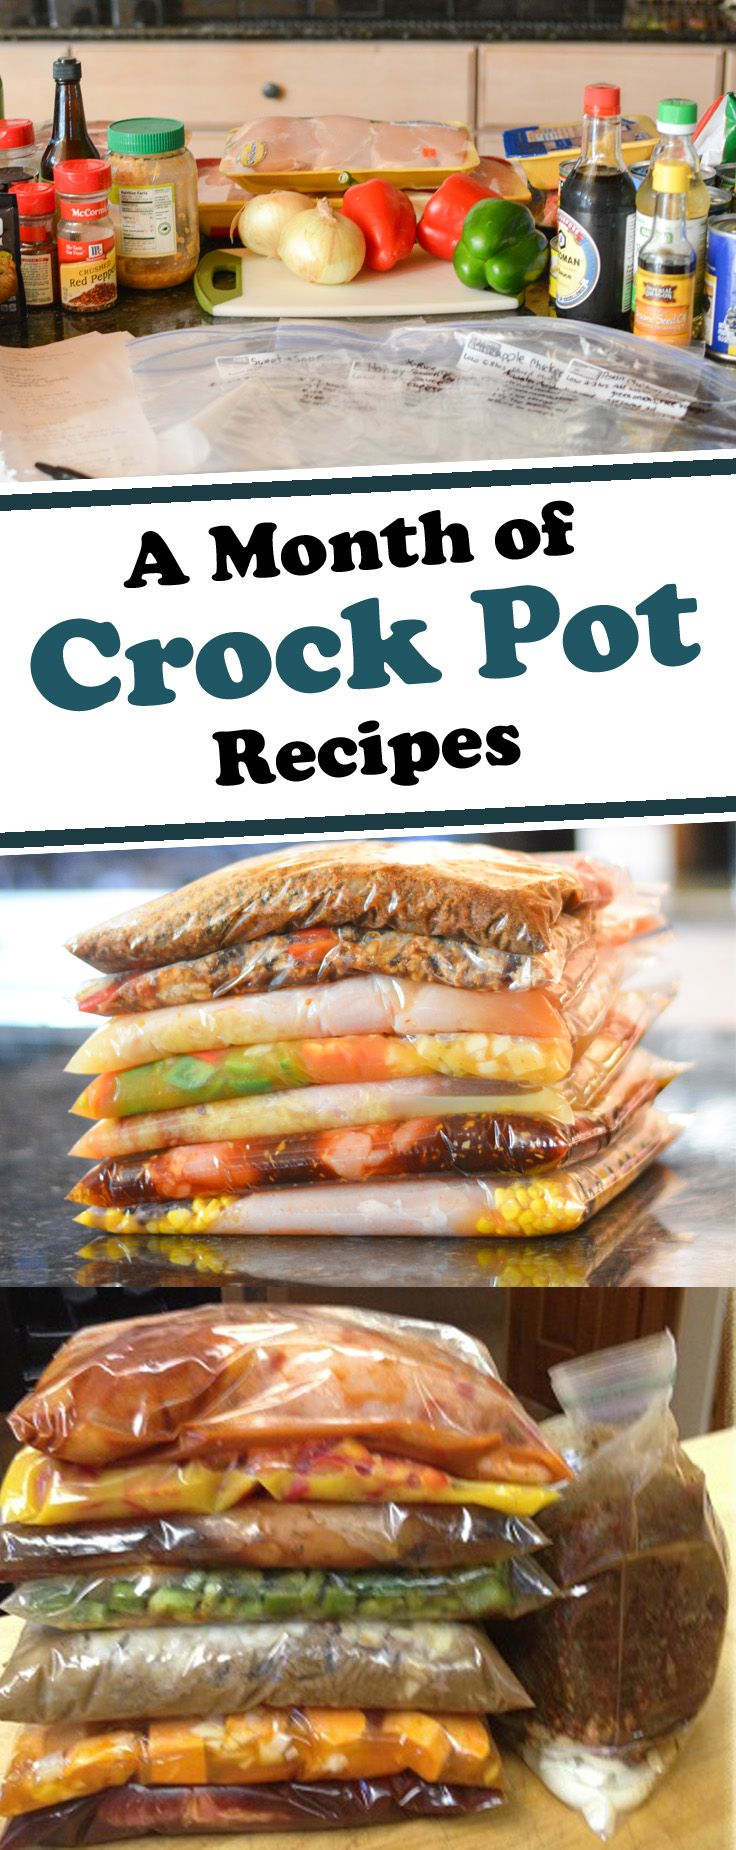 Are you interested in stocking your freezer with crock pot freezer meals? Check out our tips to help you stay on budget and stock your freezer full of ready to make meals.